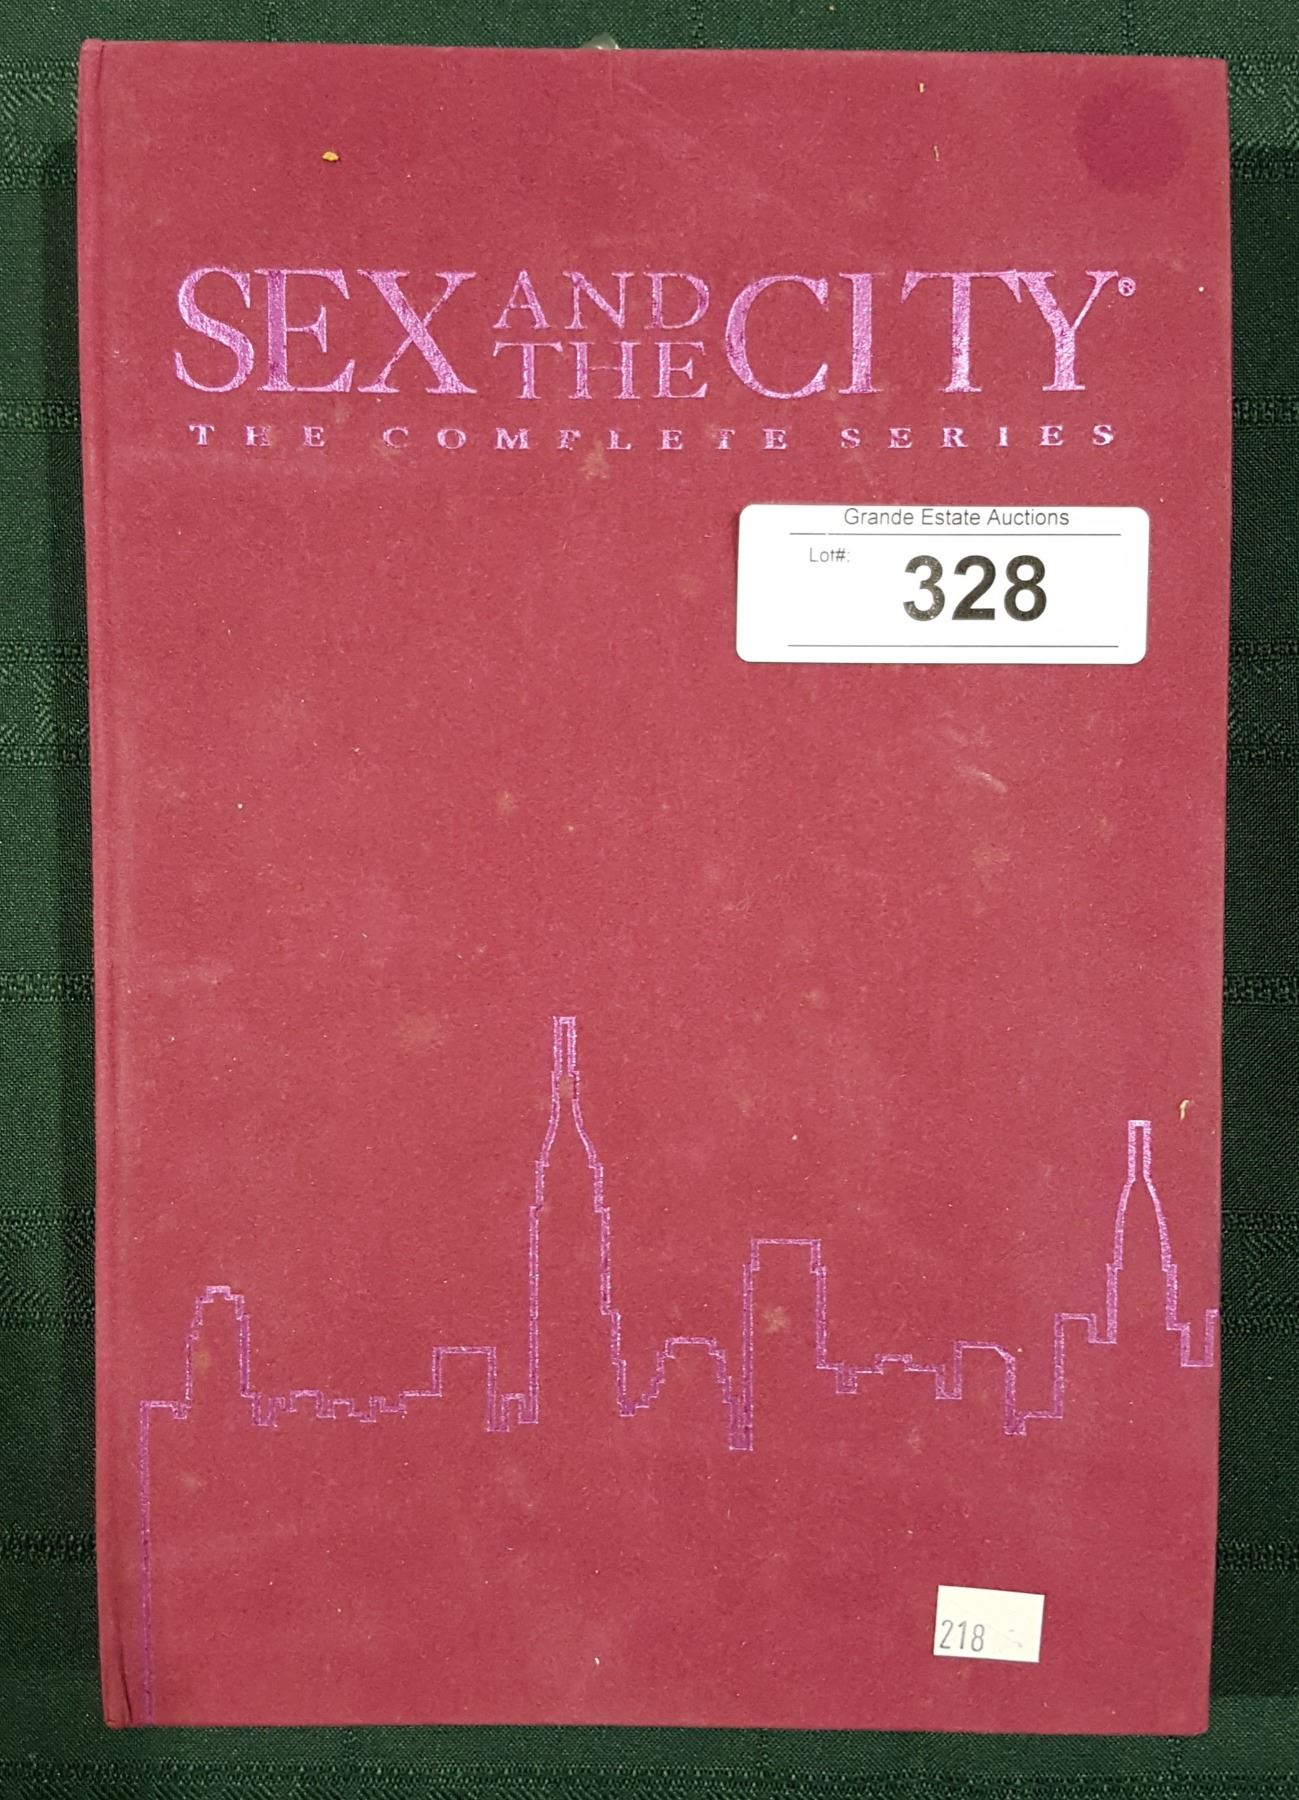 Sex in the city dvd set